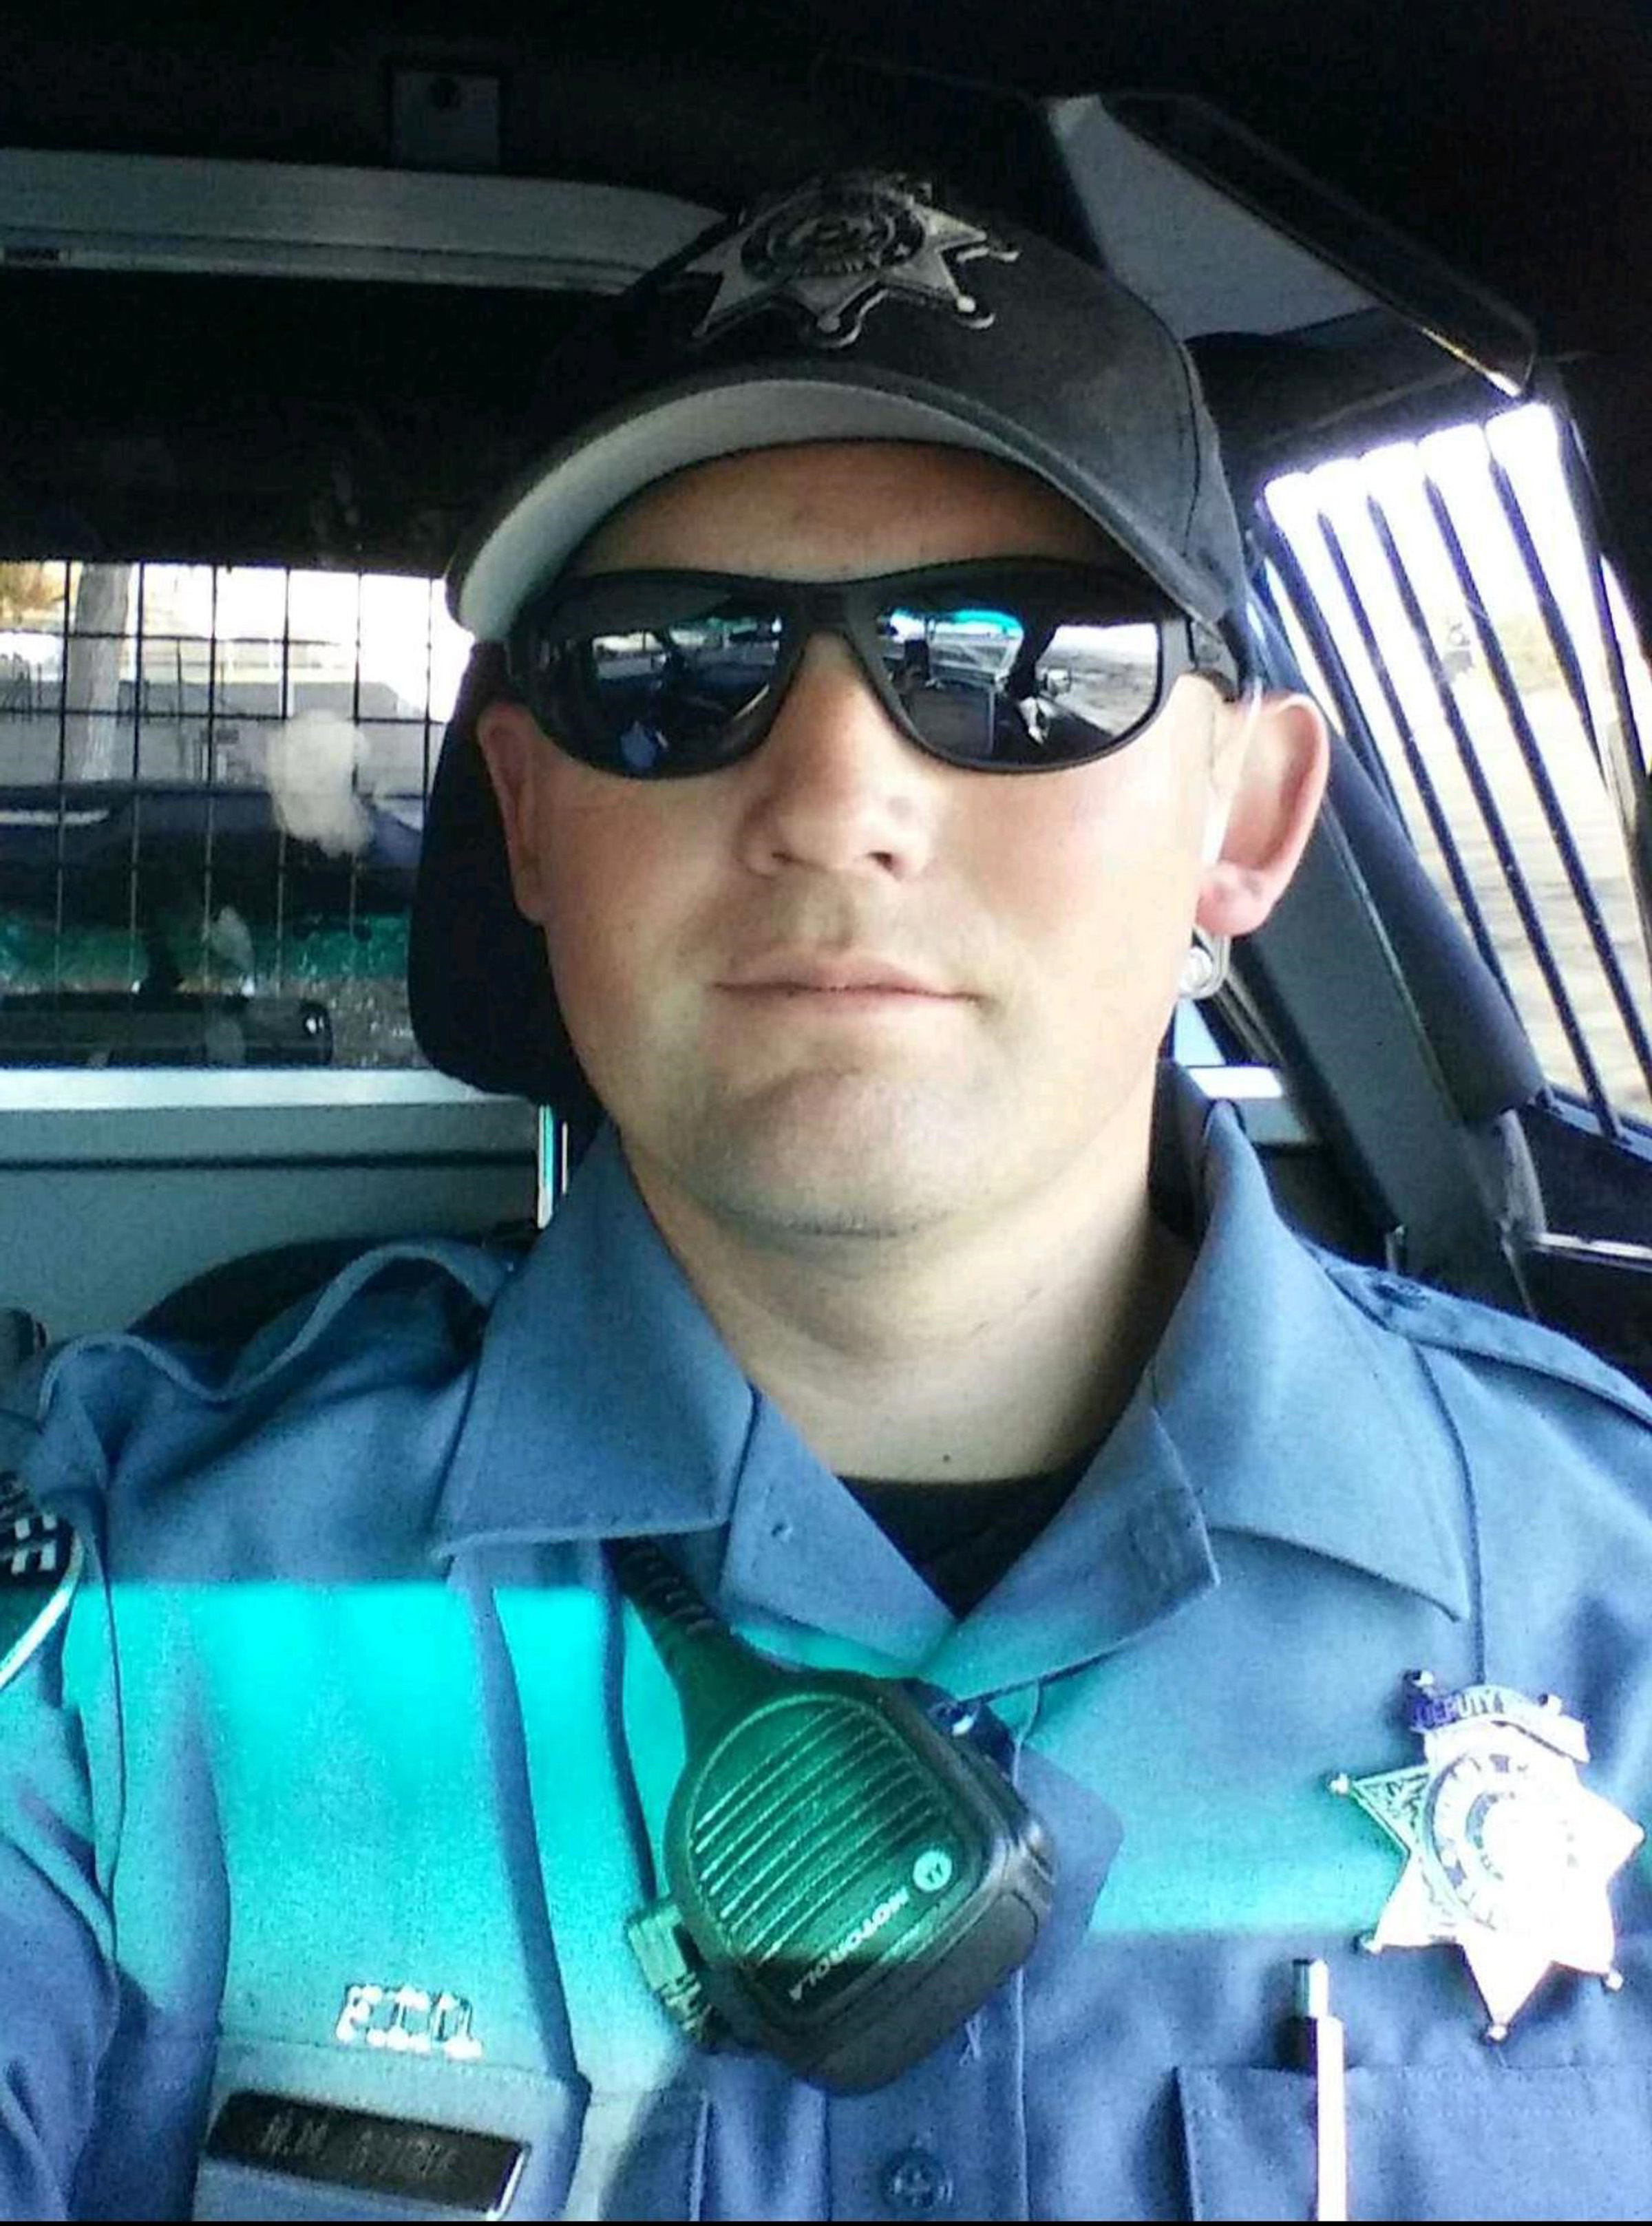 Deputy Sheriff Heath McDonald Gumm | Adams County Sheriff's Office, Colorado